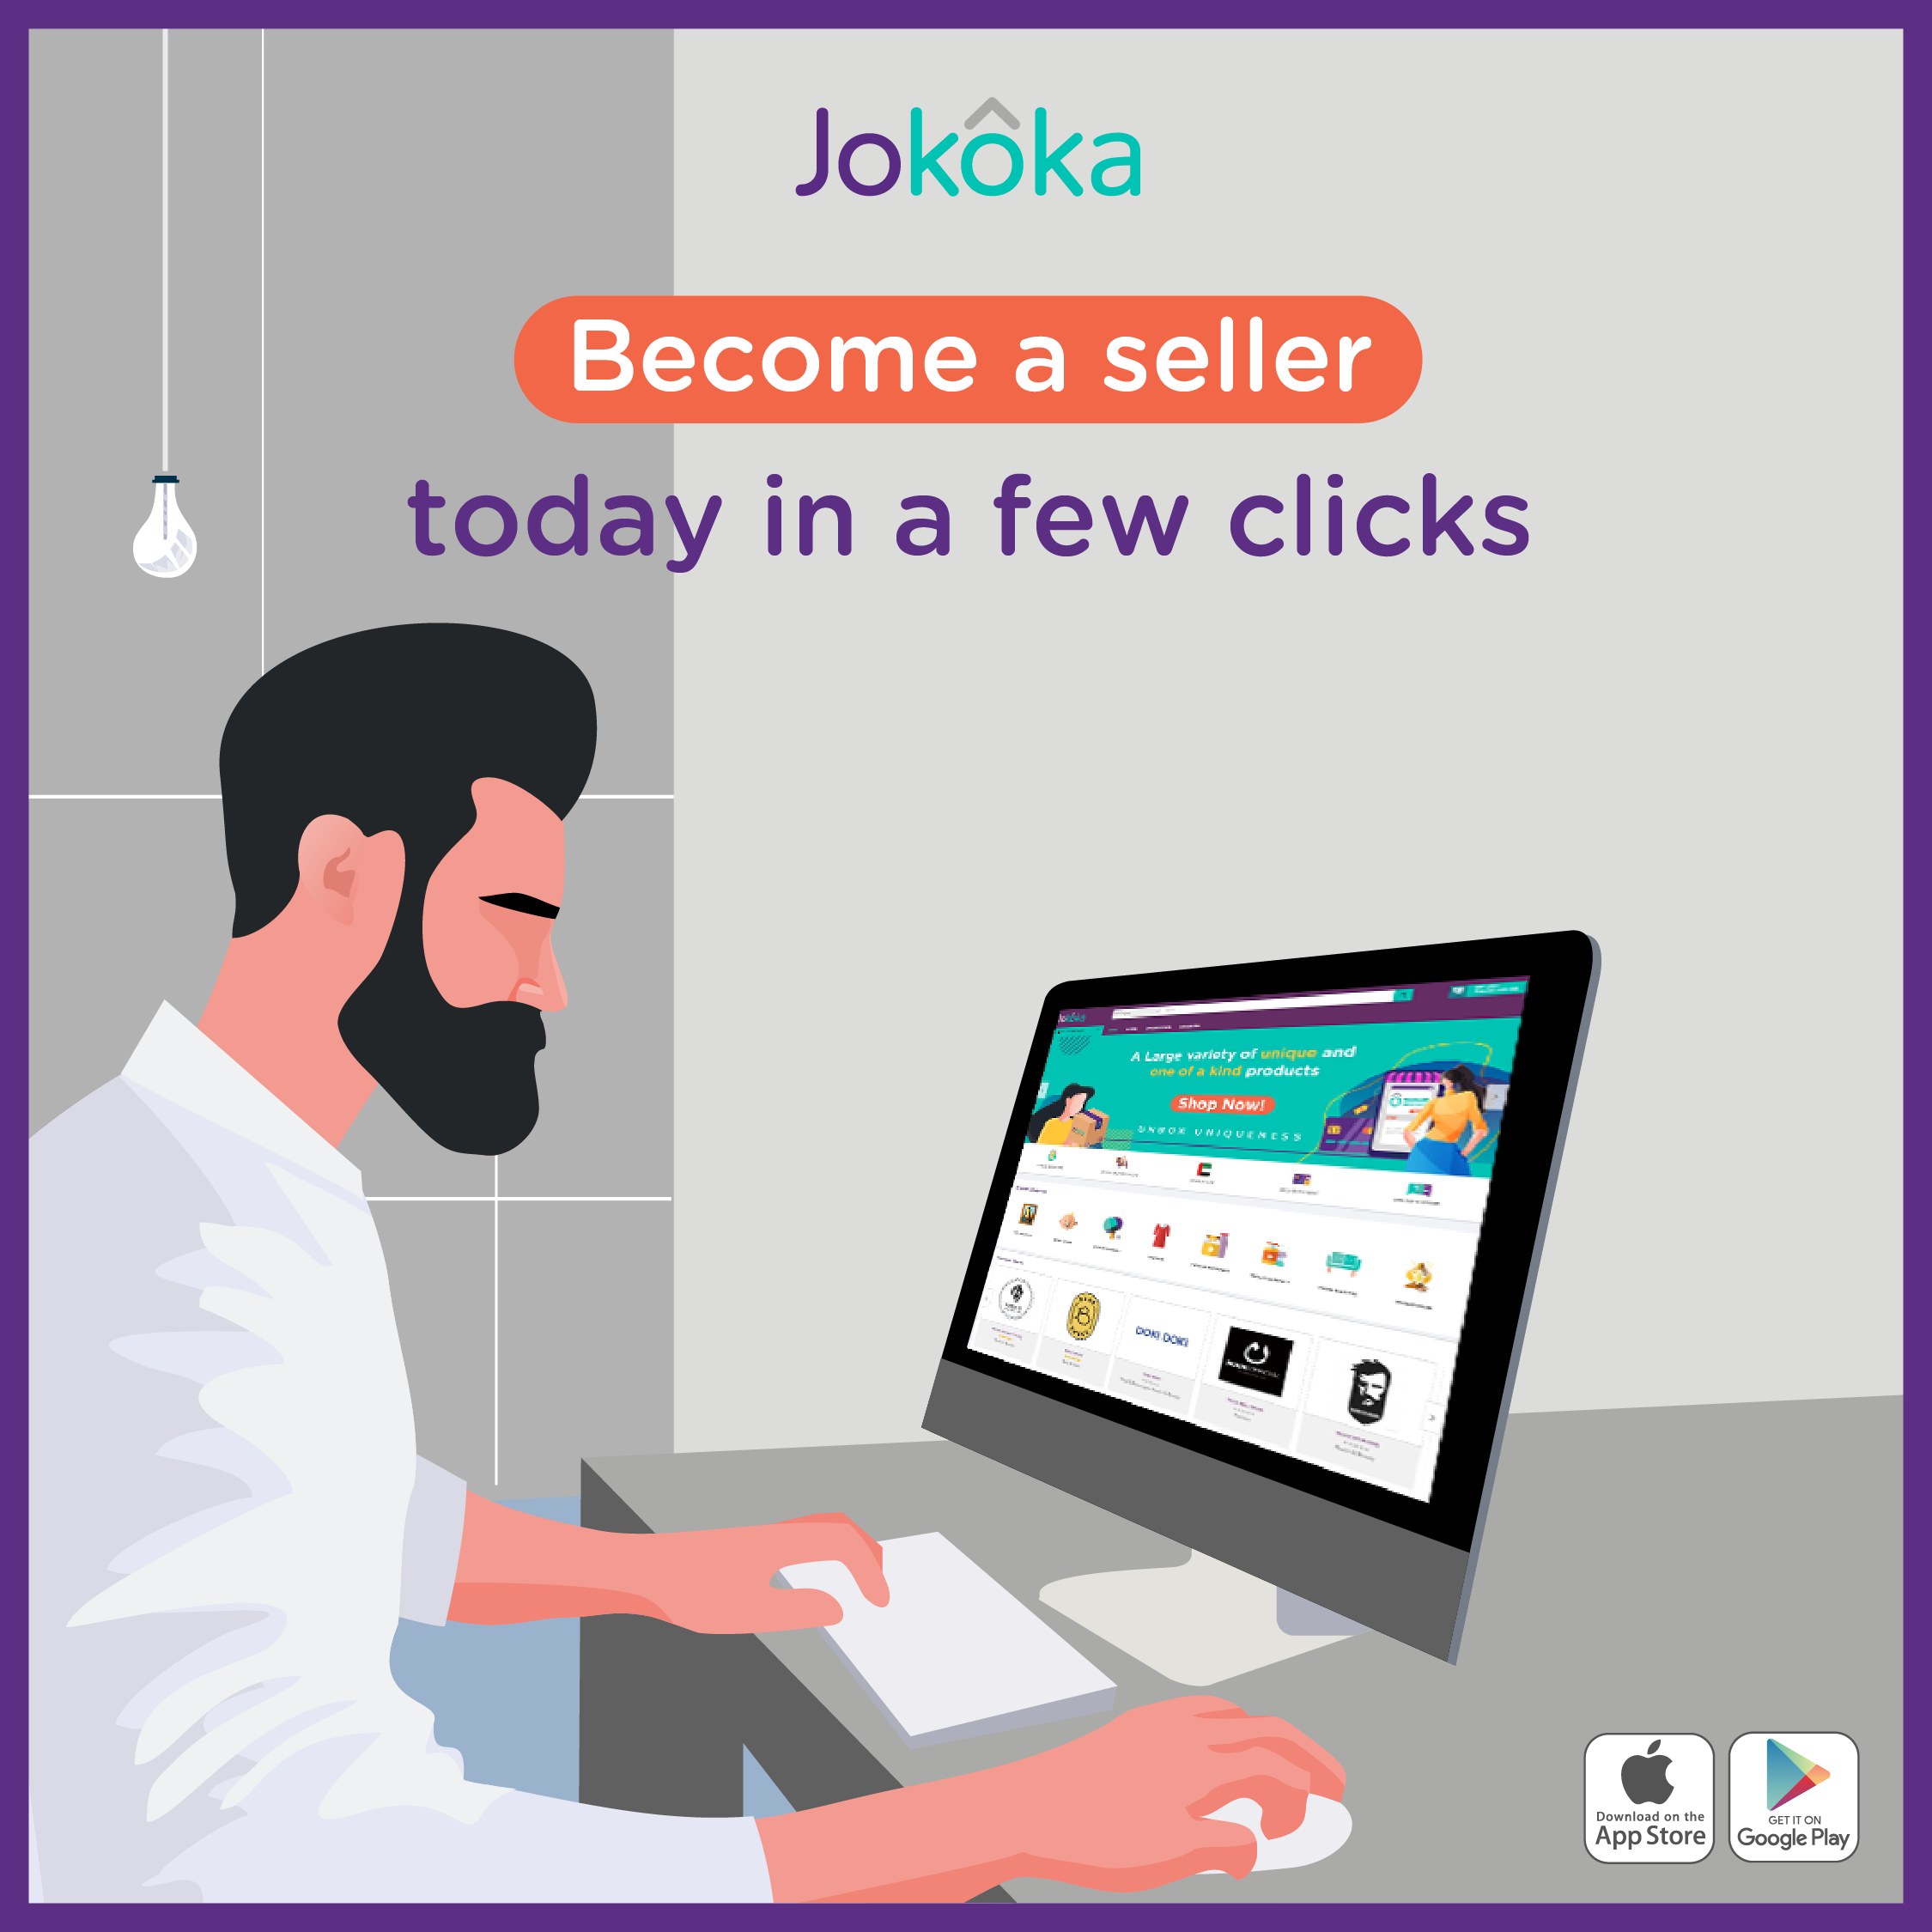 Become A Seller App Store Google Play App How To Become